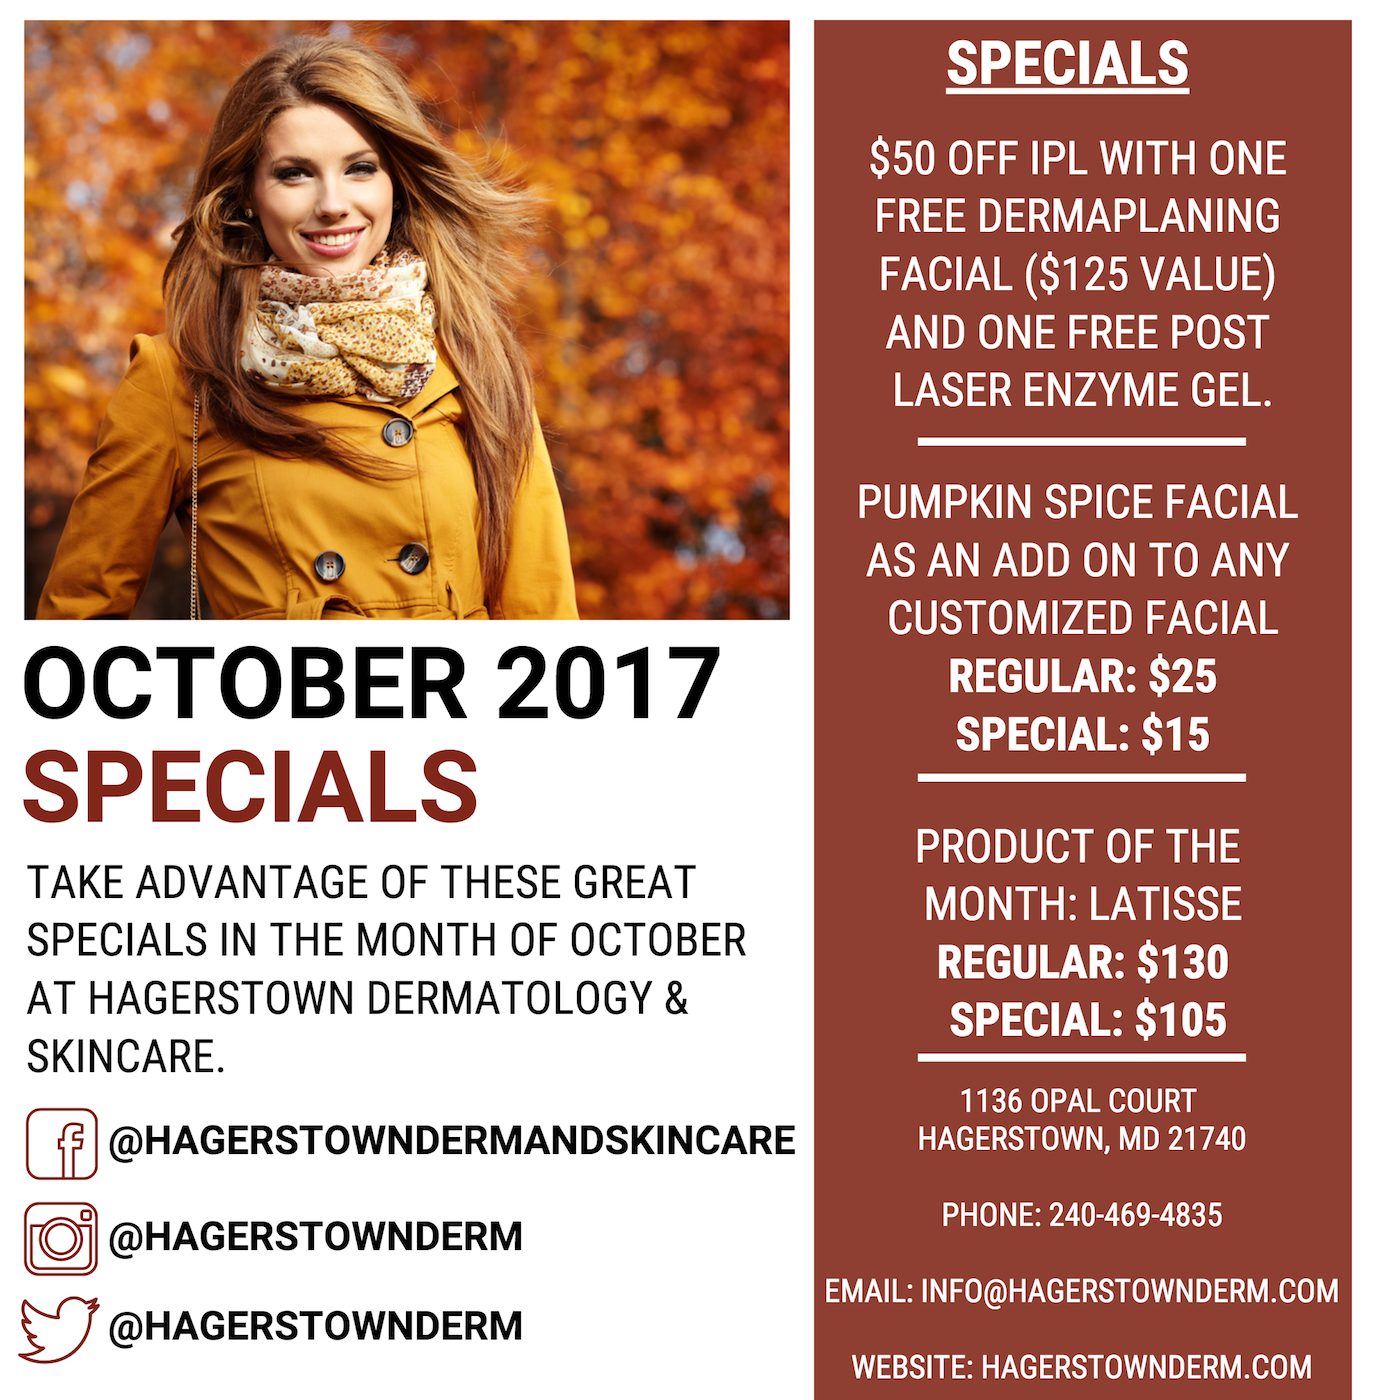 Hagertown Derm October Specials